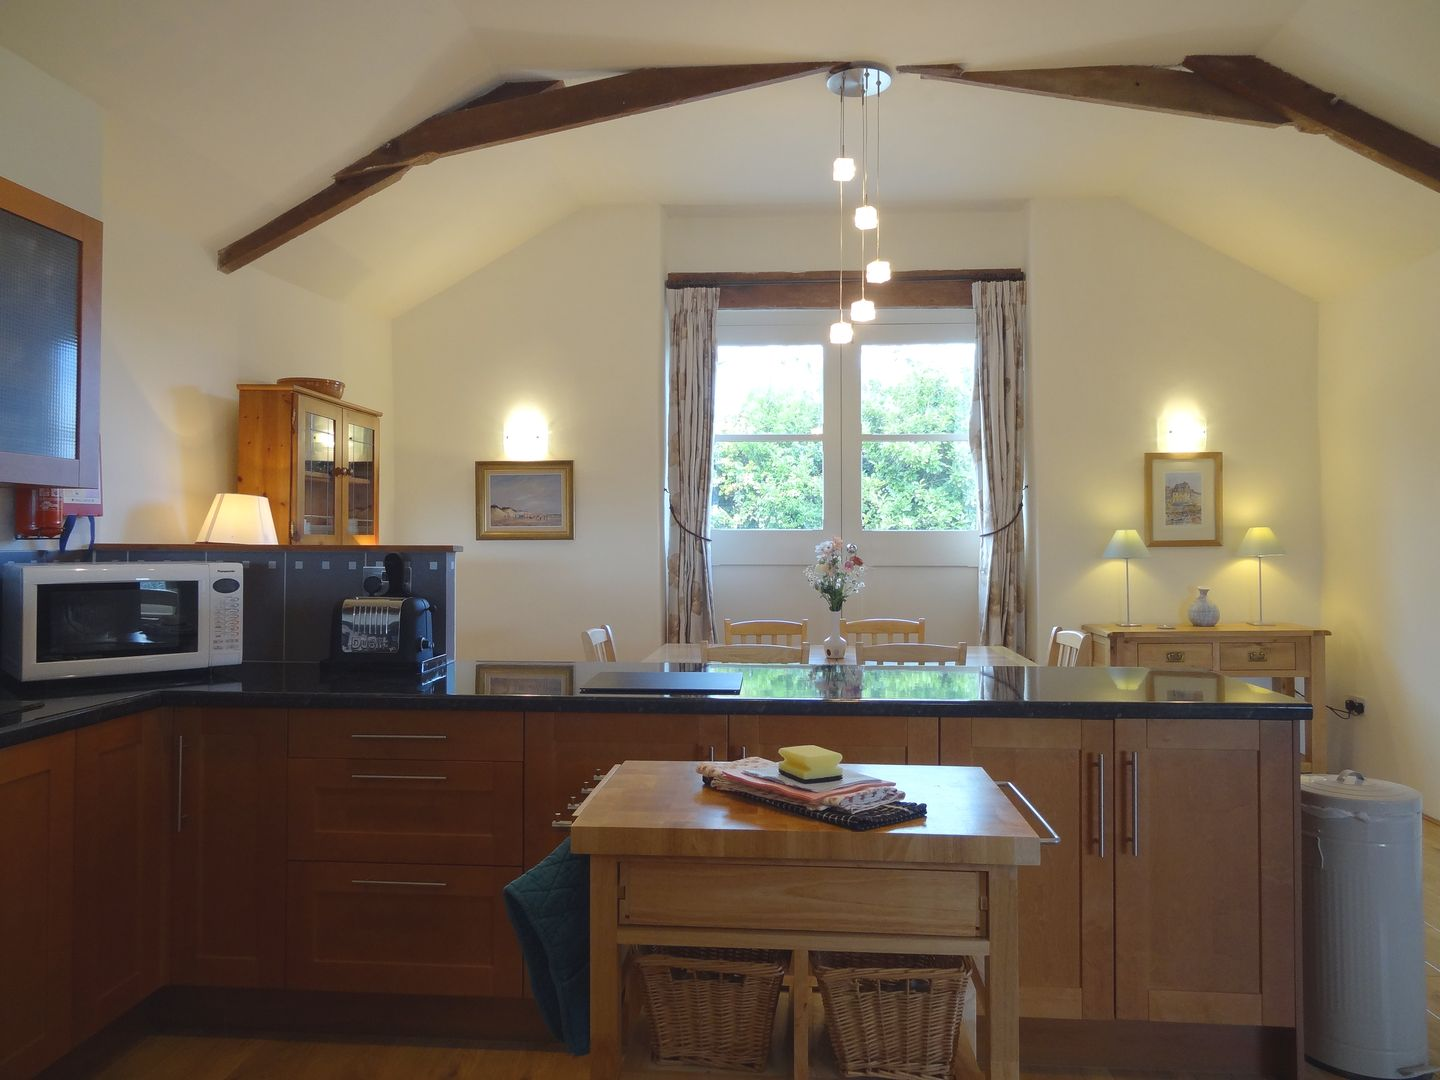 Crosscombe Barn Loddiswell Kitchen With Window